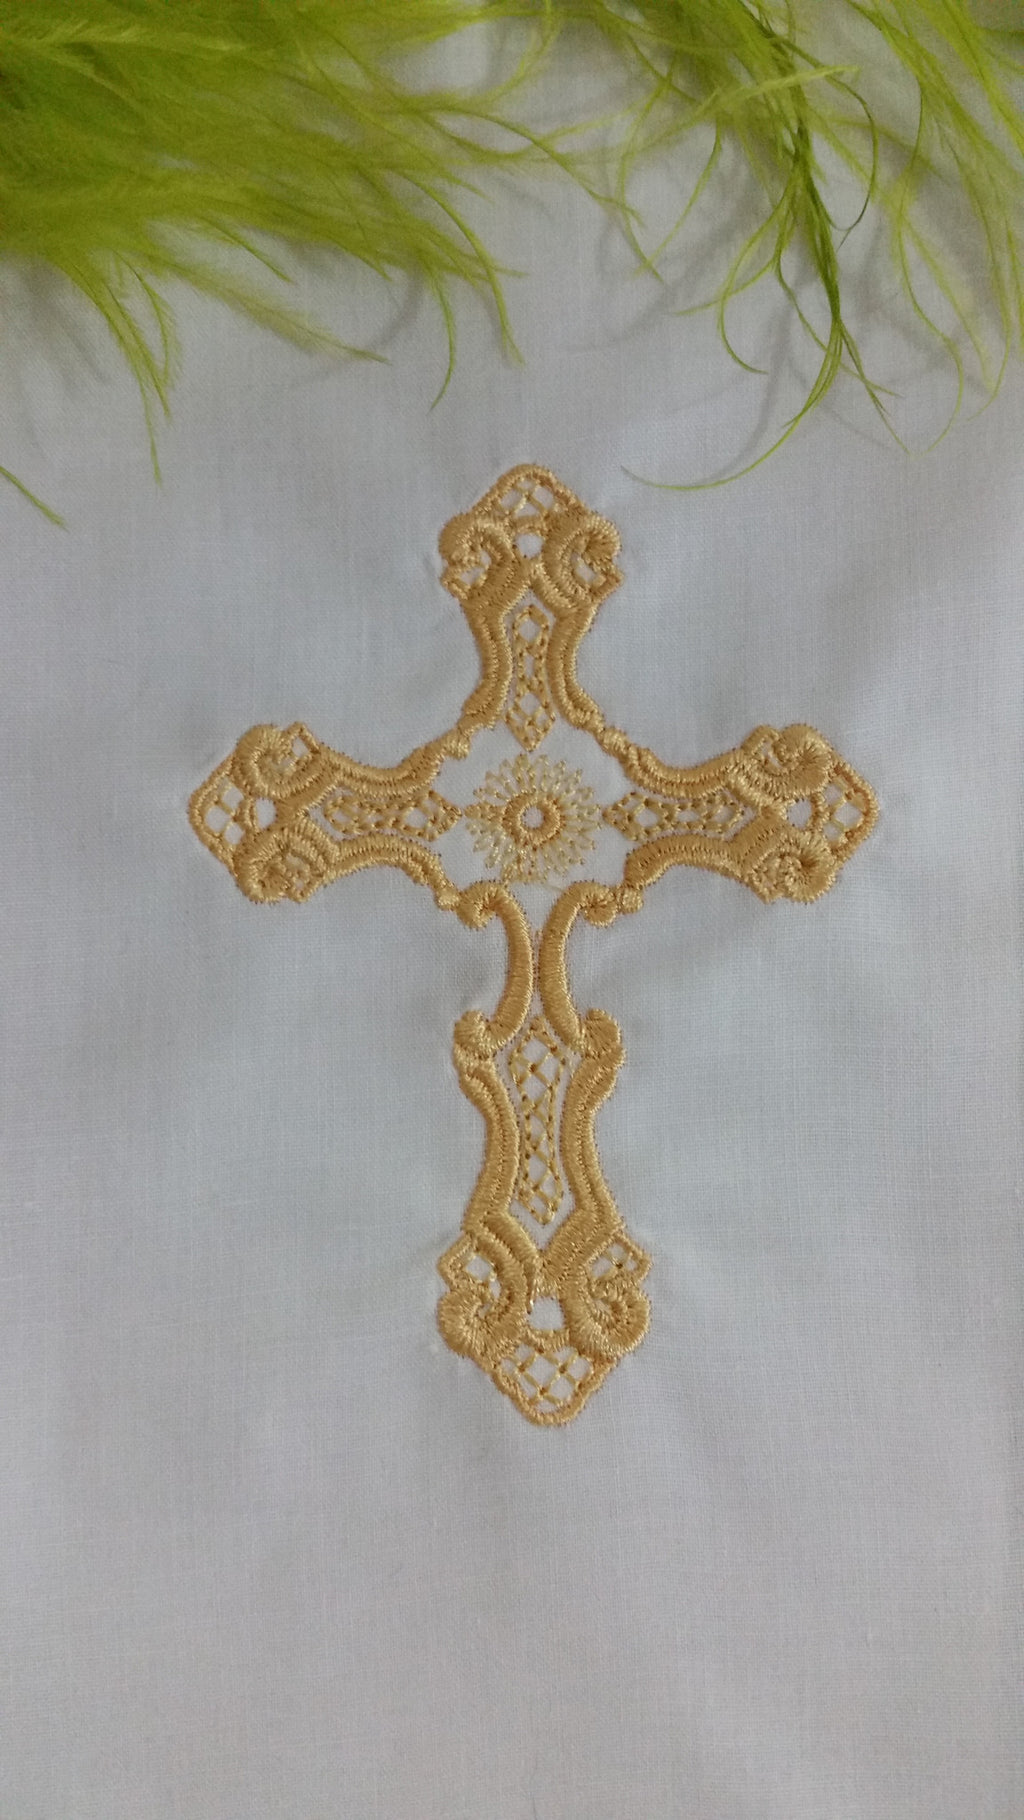 Golden Filigree Cross 4x4